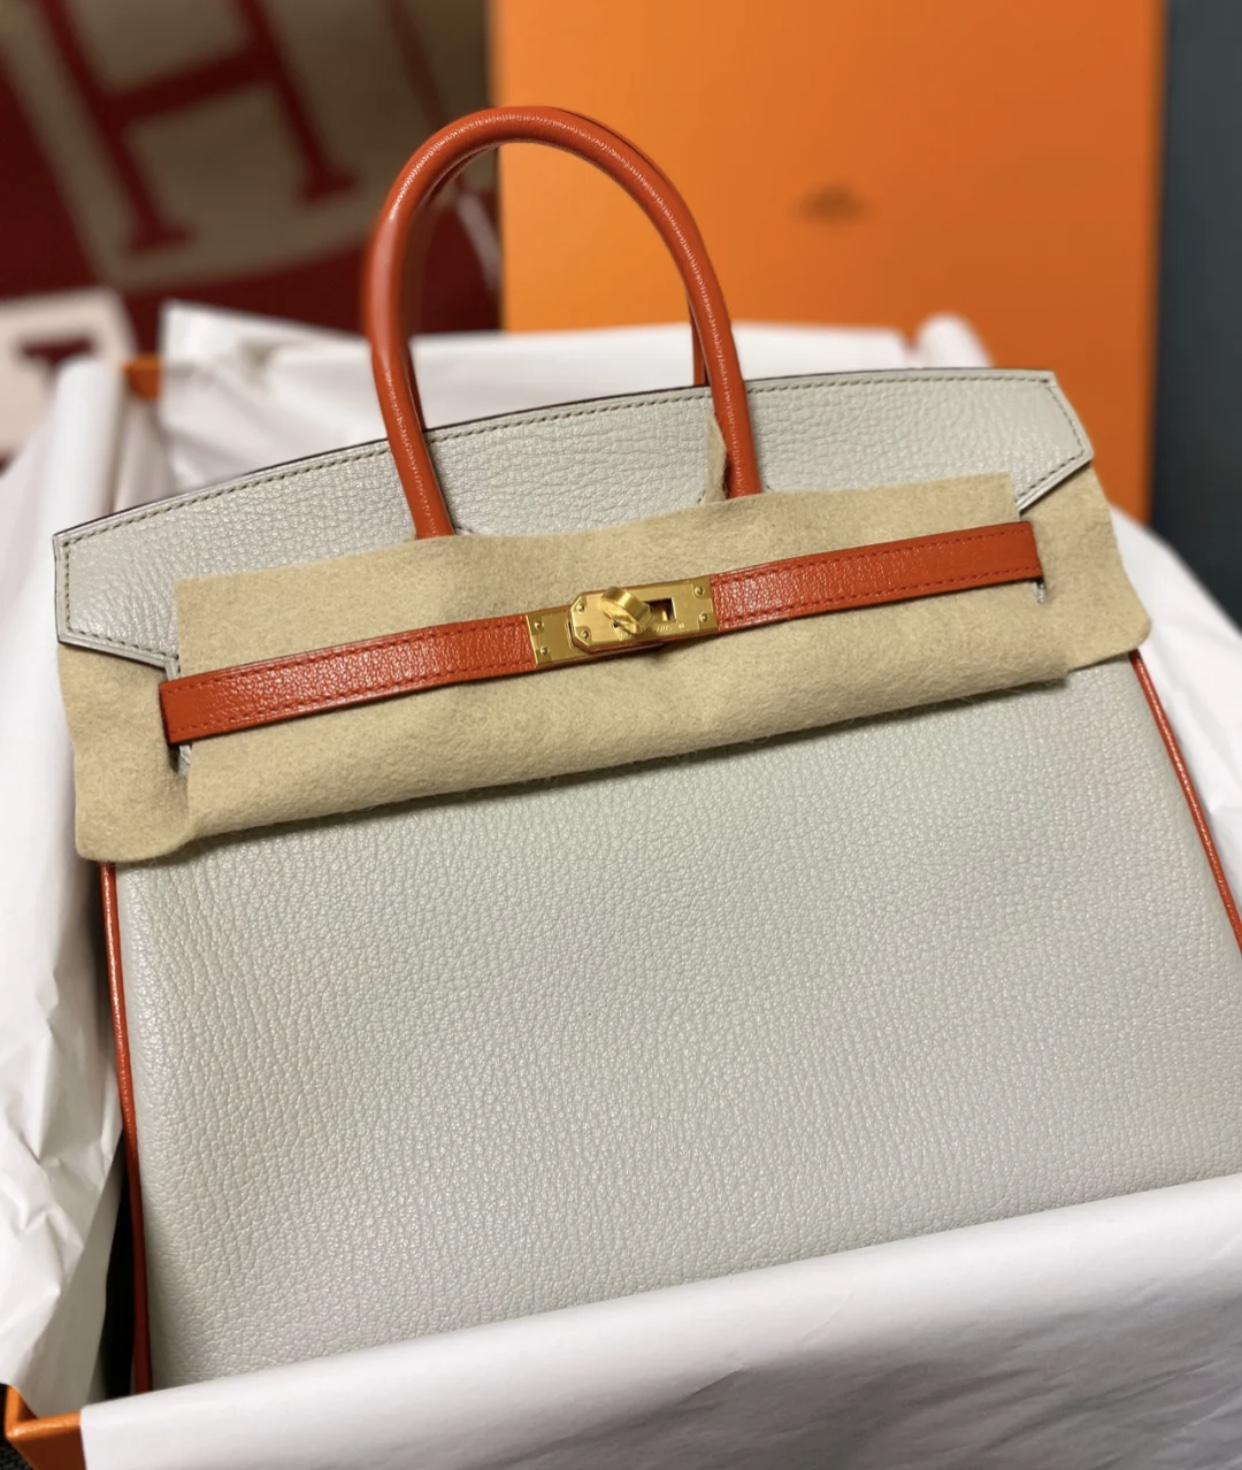 Hermes Birkin 25cm Hss 山羊皮 4Z海鷗灰 Girls Mouette 拼 9J Feu 火焰橙